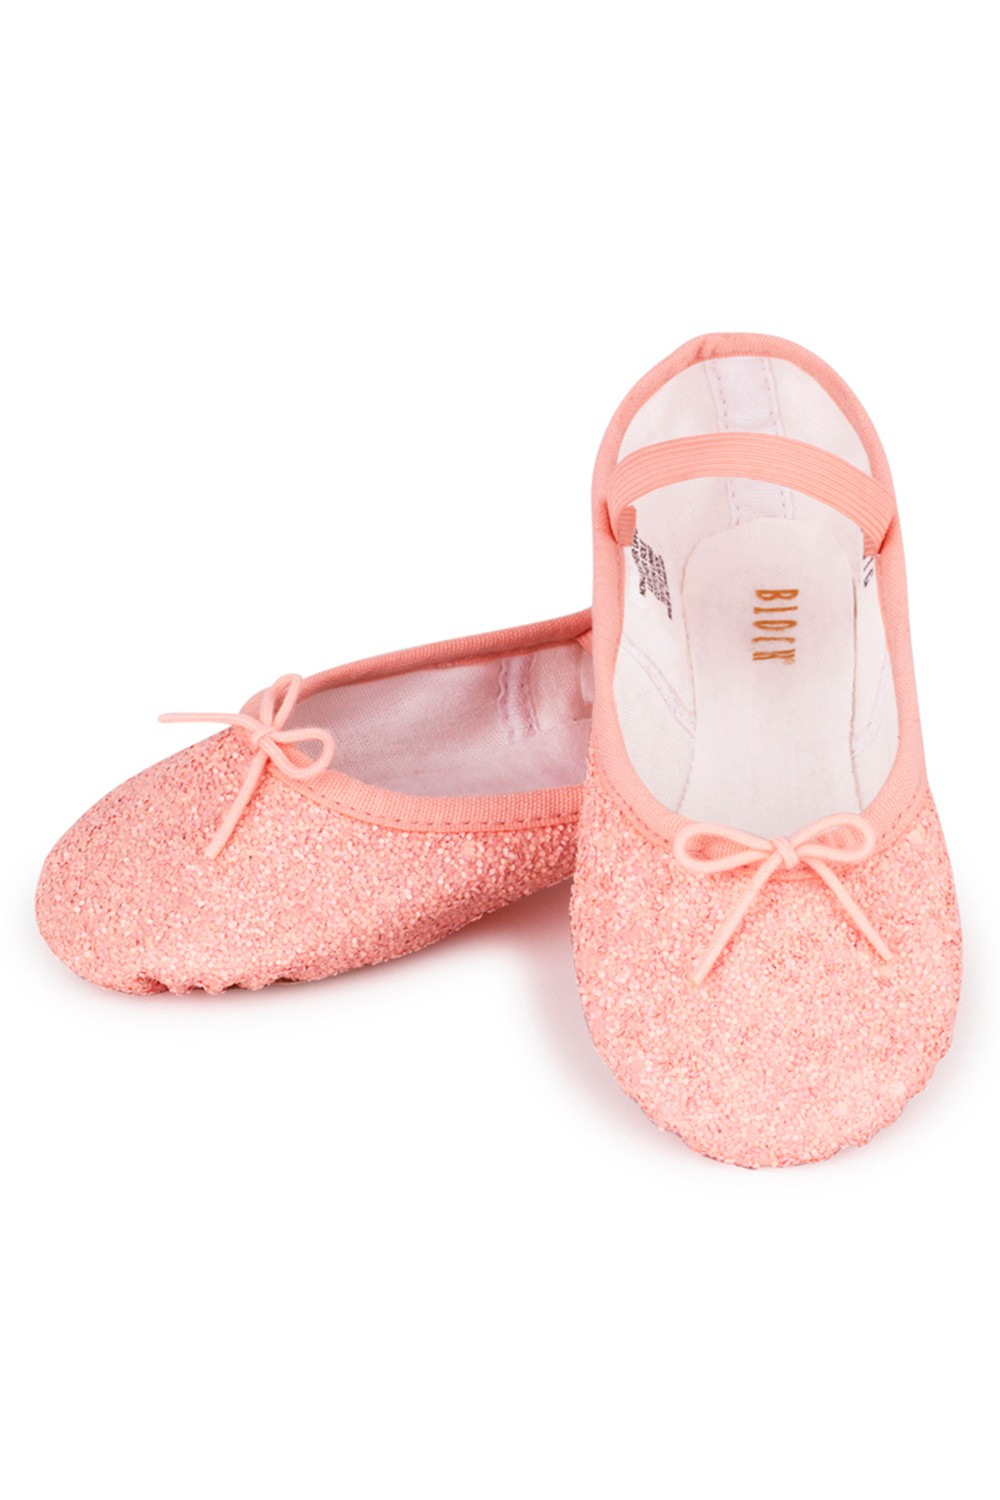 Sparkle Girl's Ballet Shoes